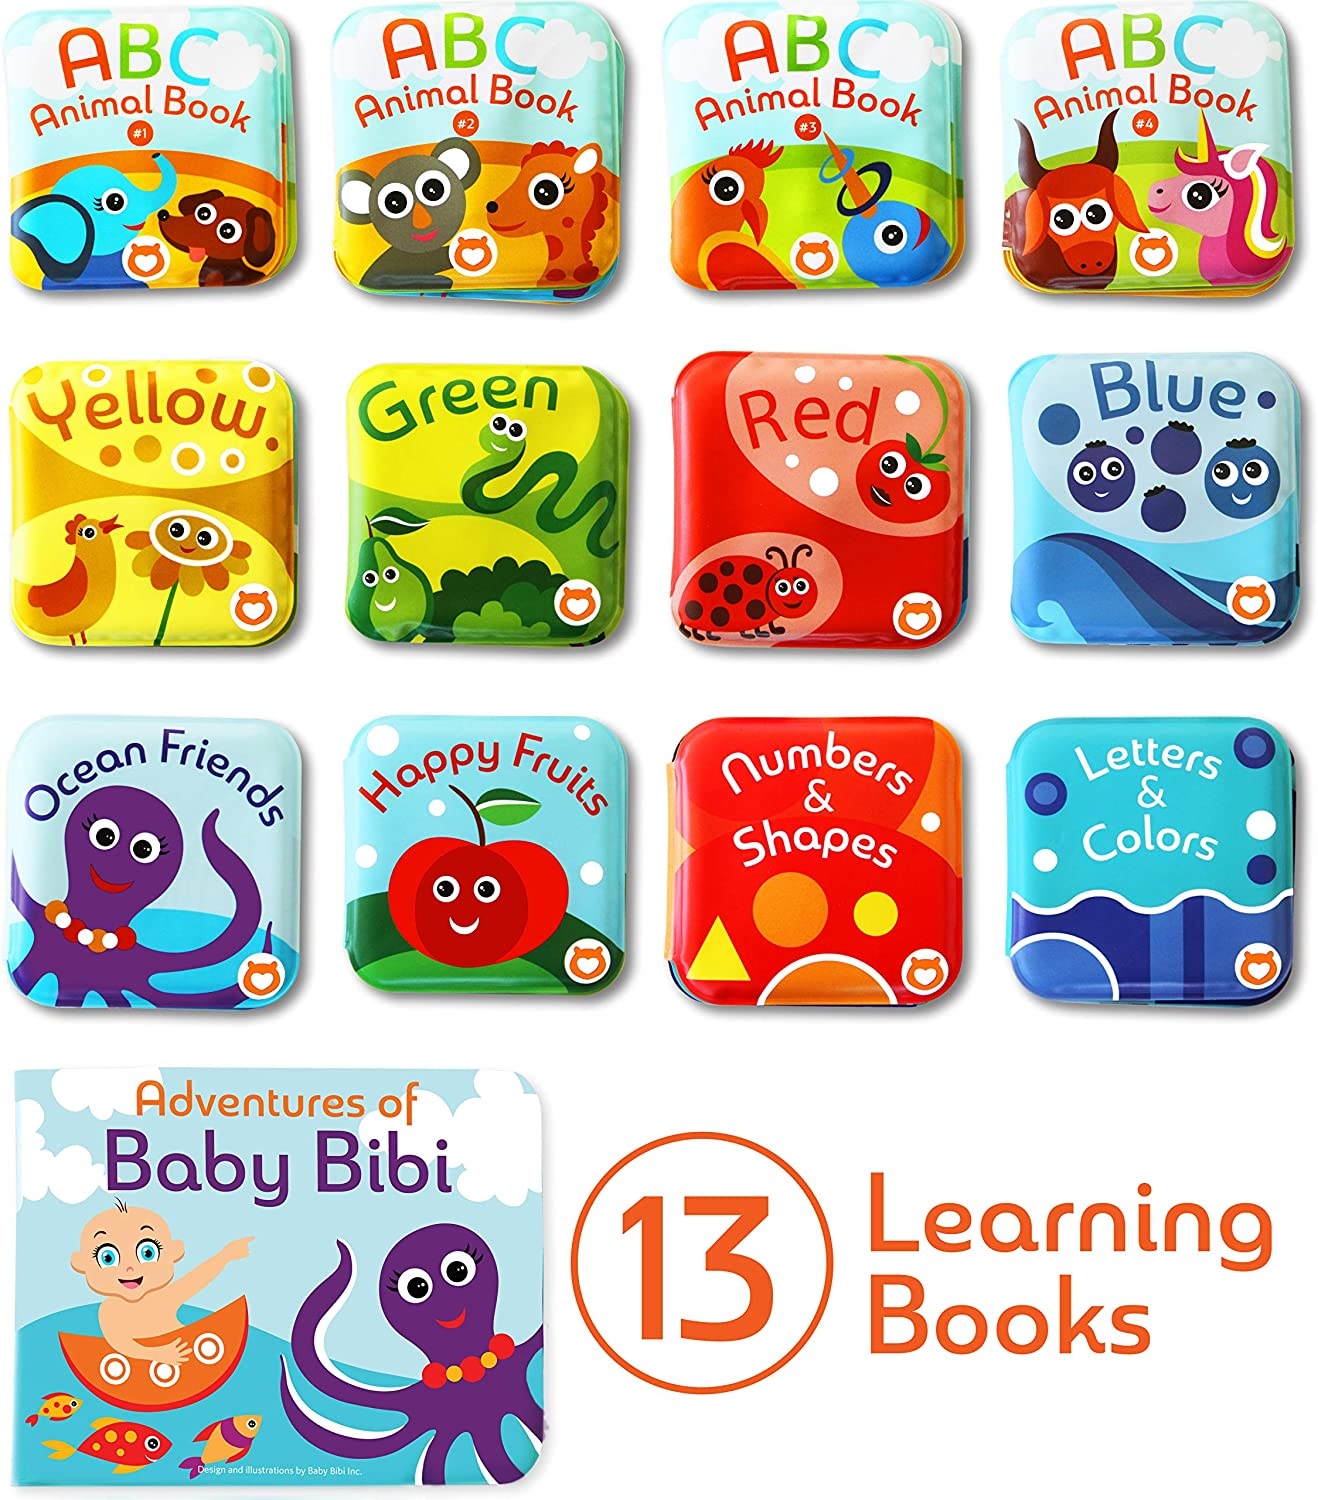 Learning Toy Books for Babies and Toddlers Baby Bath Books Mega Set Numbers and ABC Letters Colors - Educational Waterproof Baby Bathtime Plastic Books for Bath Tub with Animals Pack of 13 Books